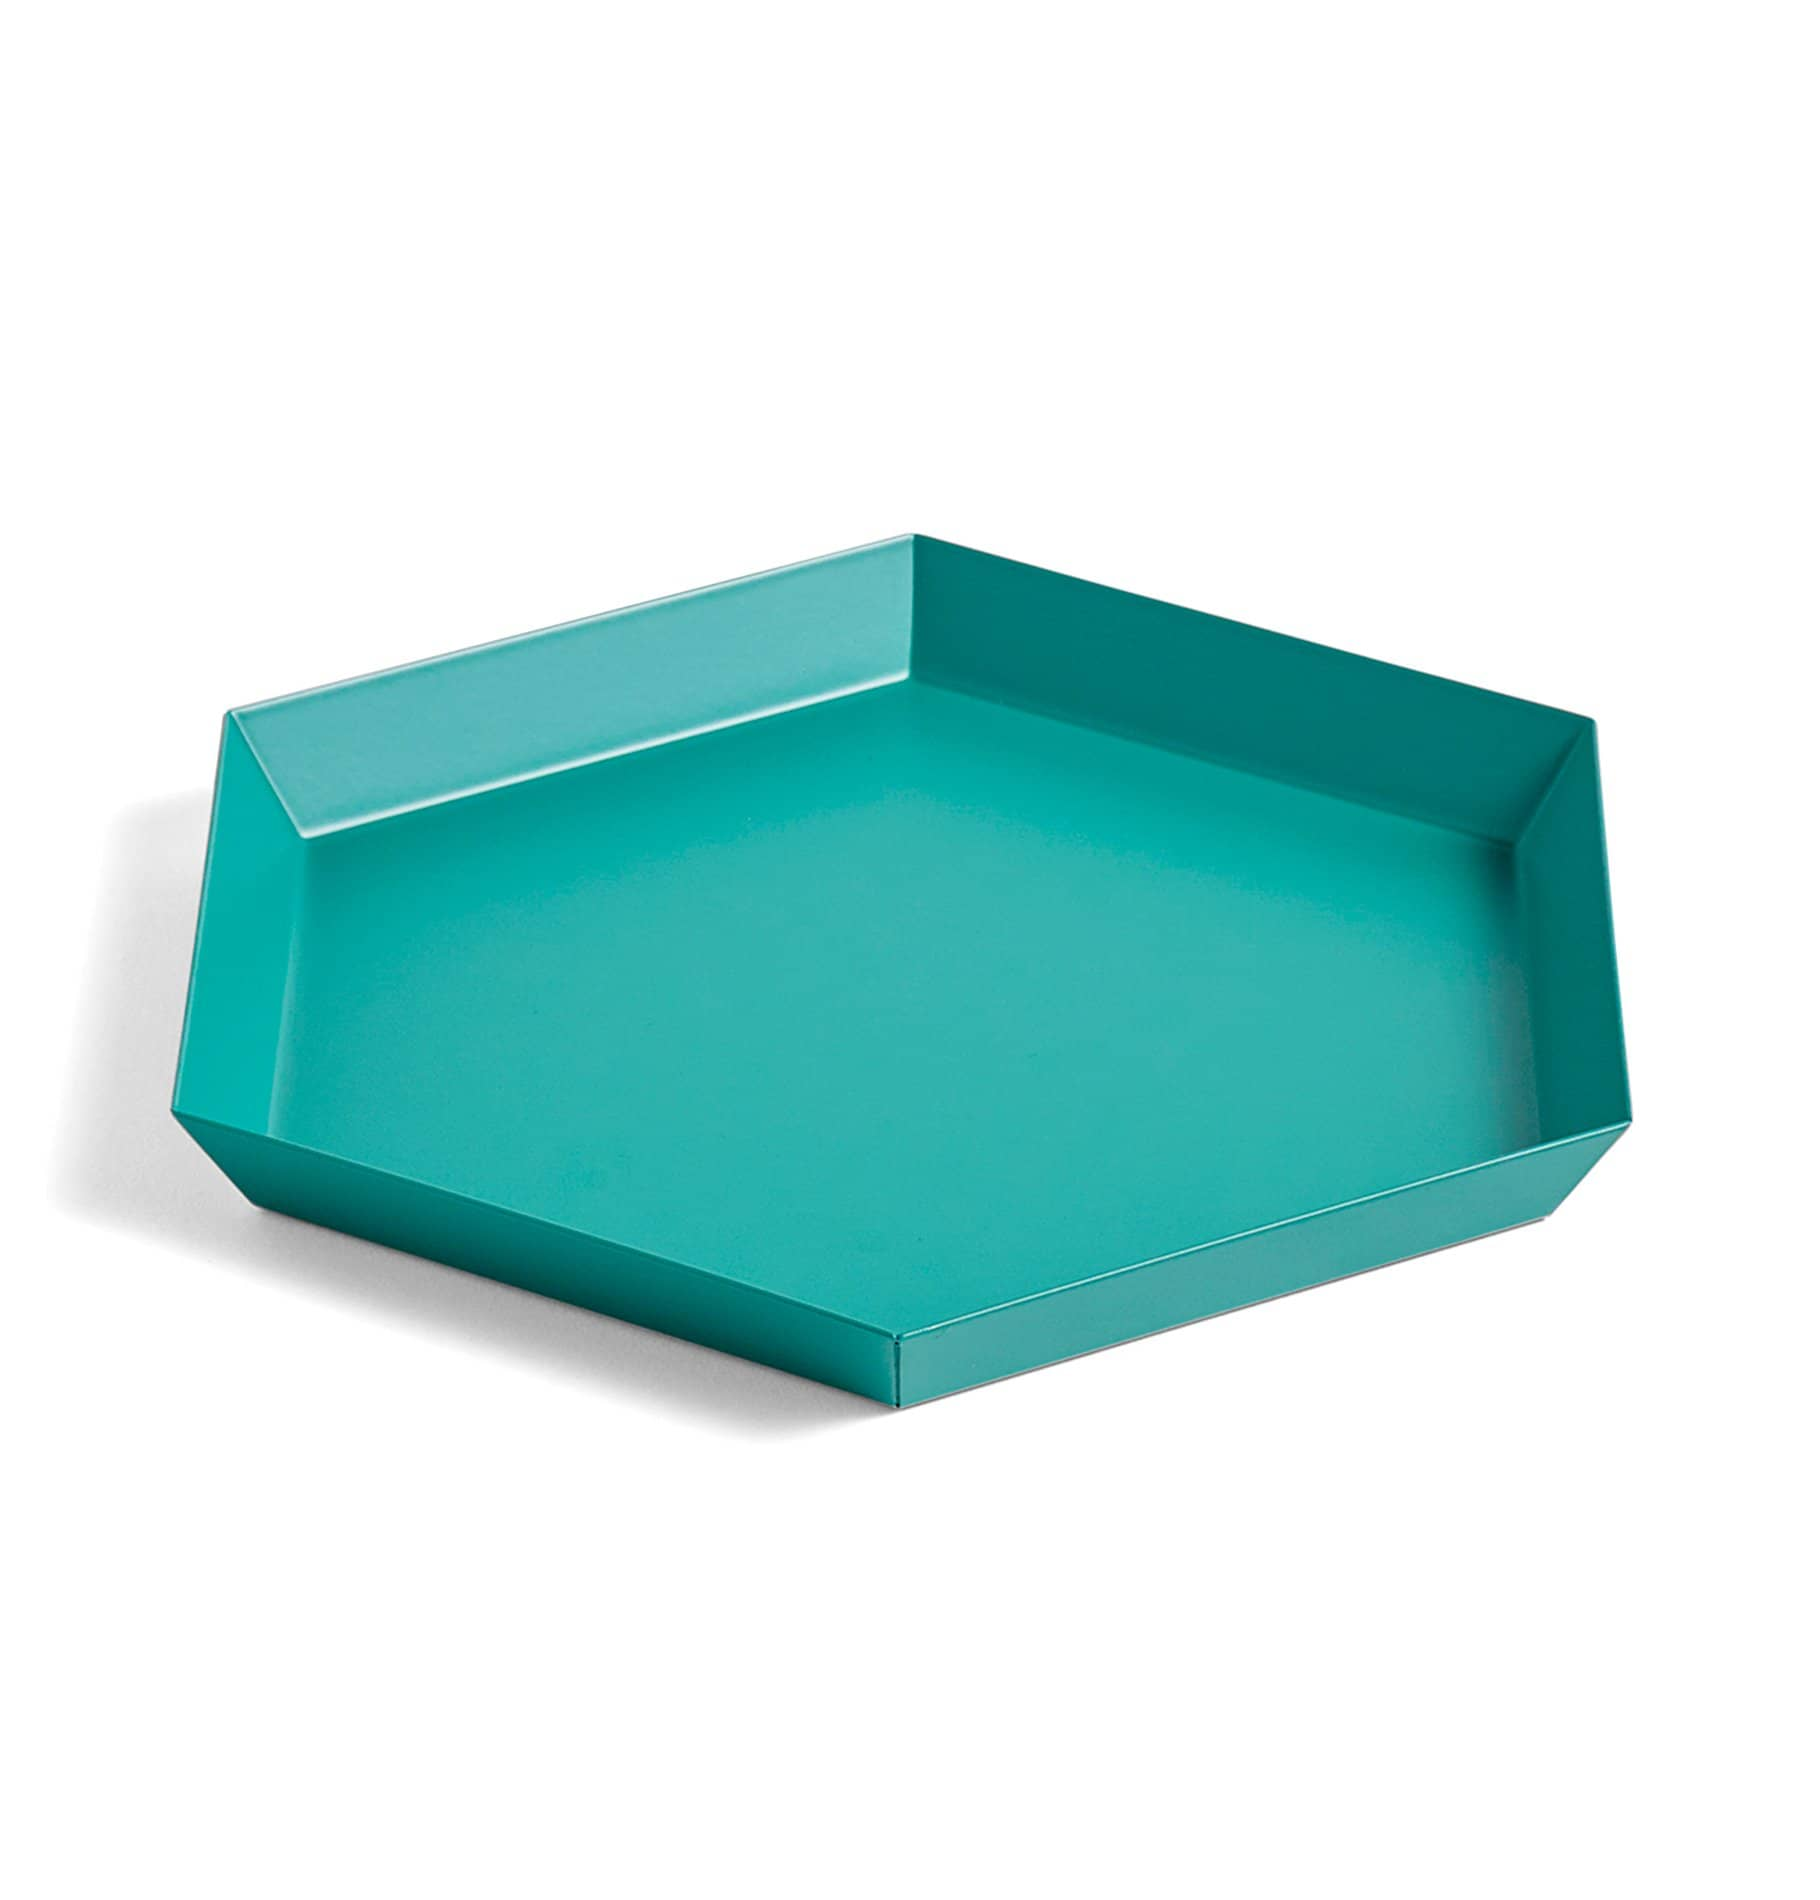 HAY Kaleido Tray - Emerald Green S